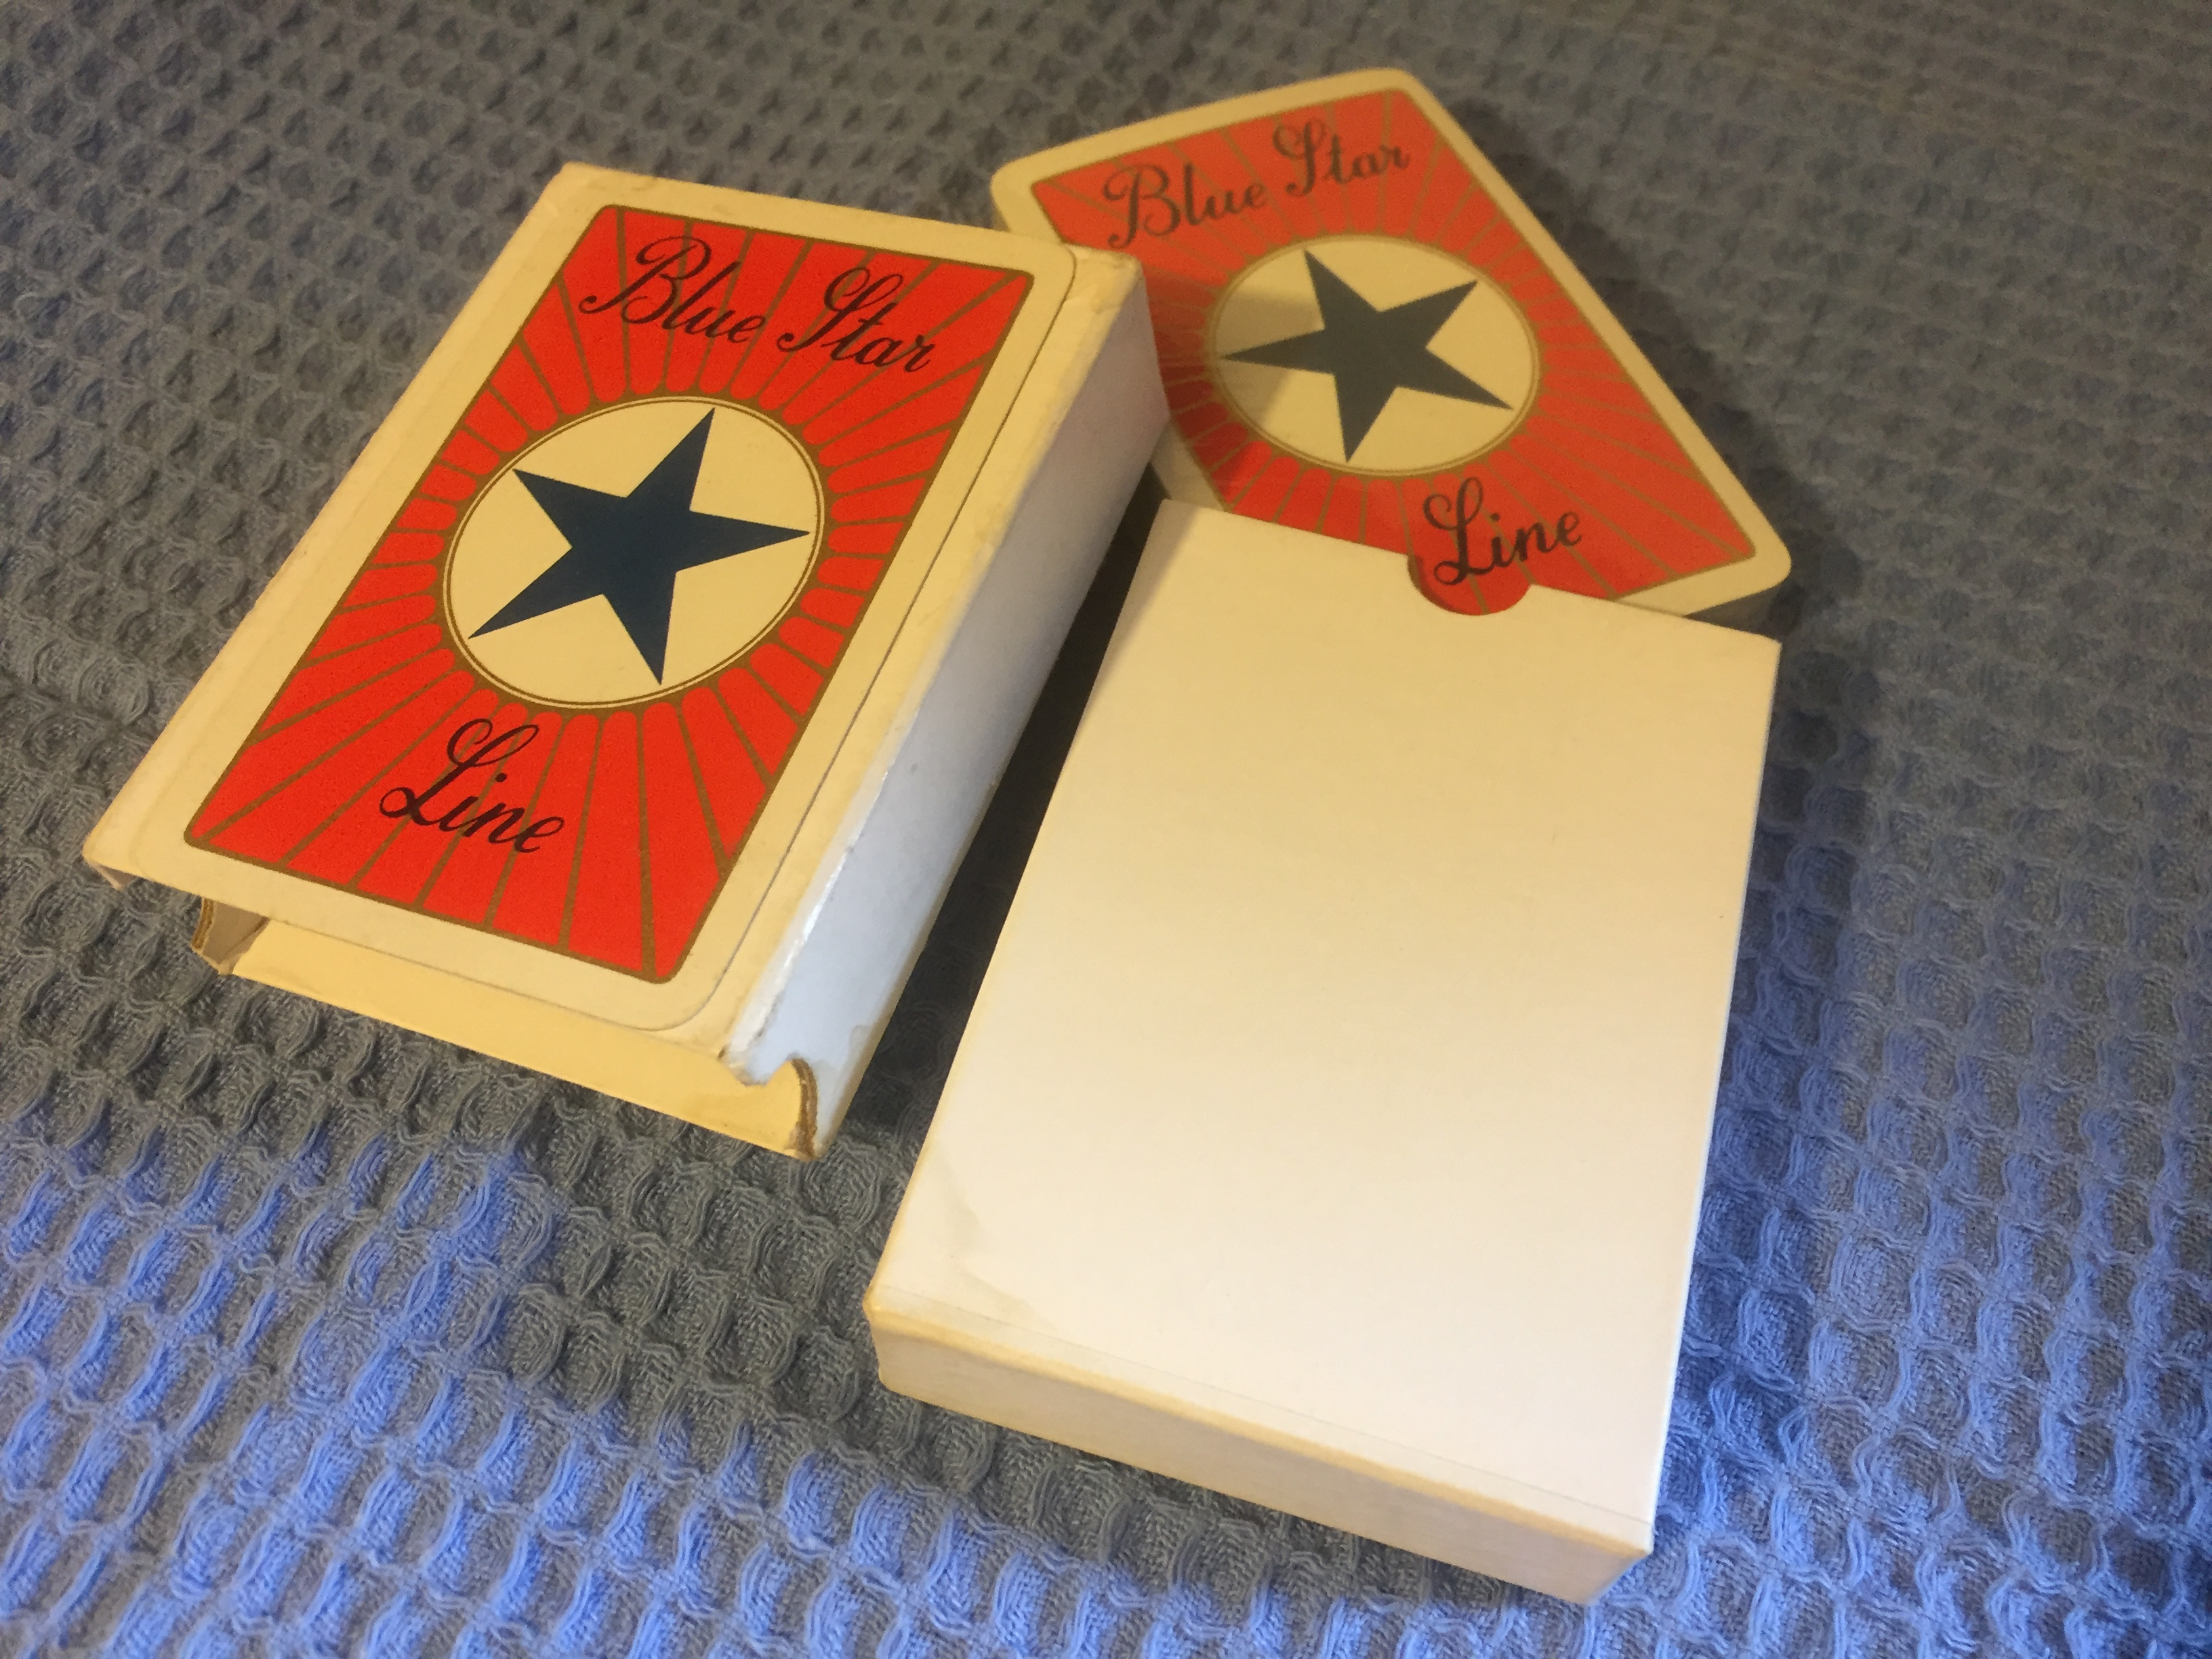 SET OF UNUSED AND UNOPENED PLAYING CARDS FROM THE BLUE STAR LINE